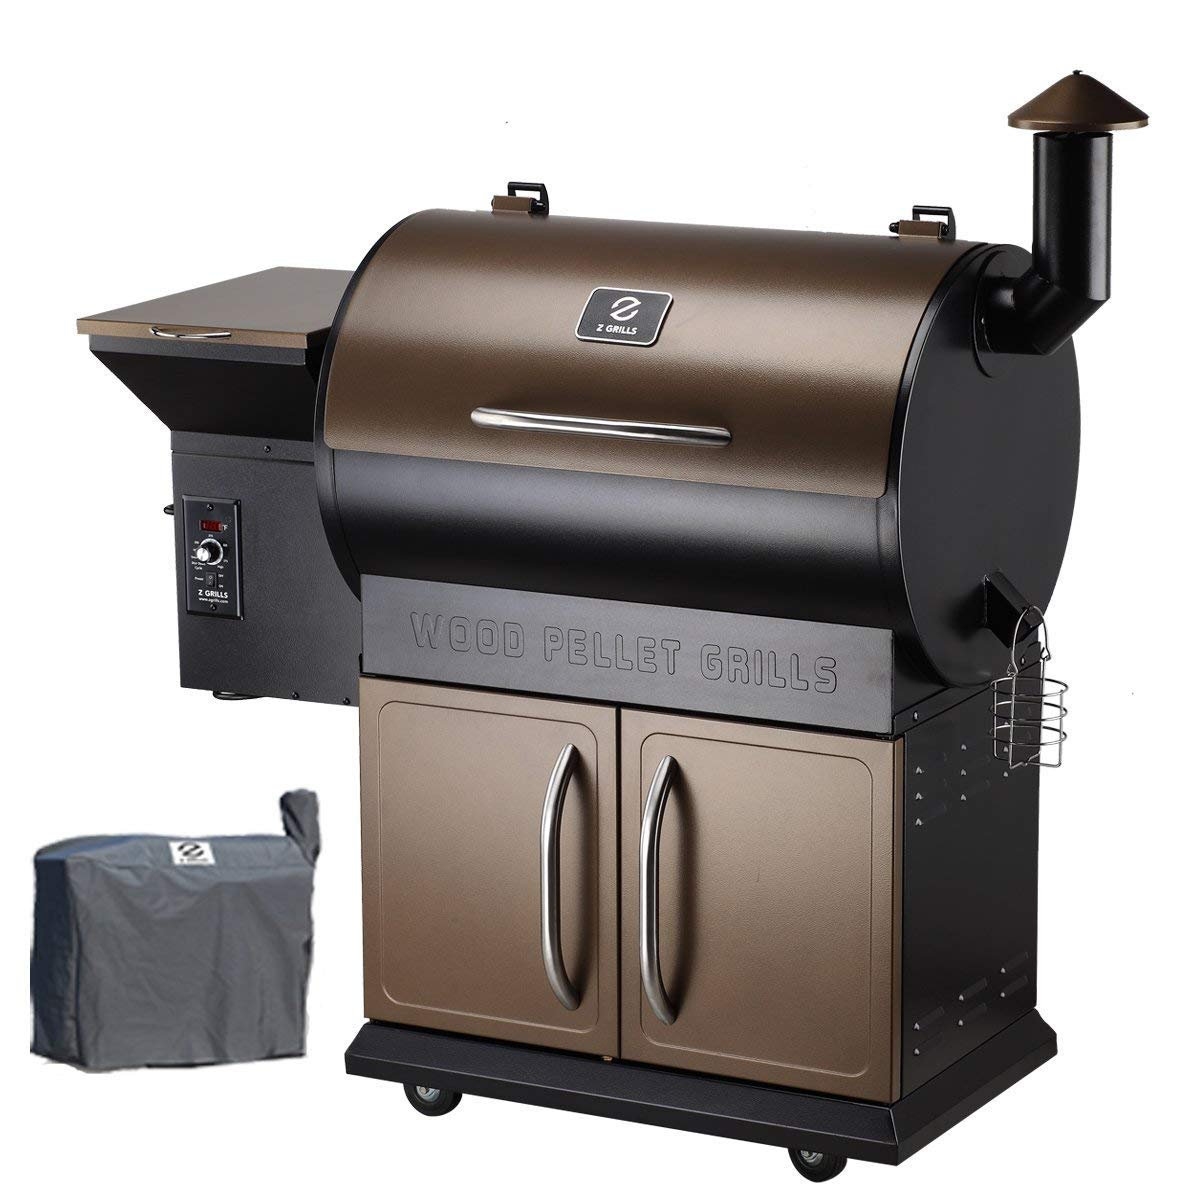 Z Grills ZPG-700D Wood Pellet Grill & Smoker Review